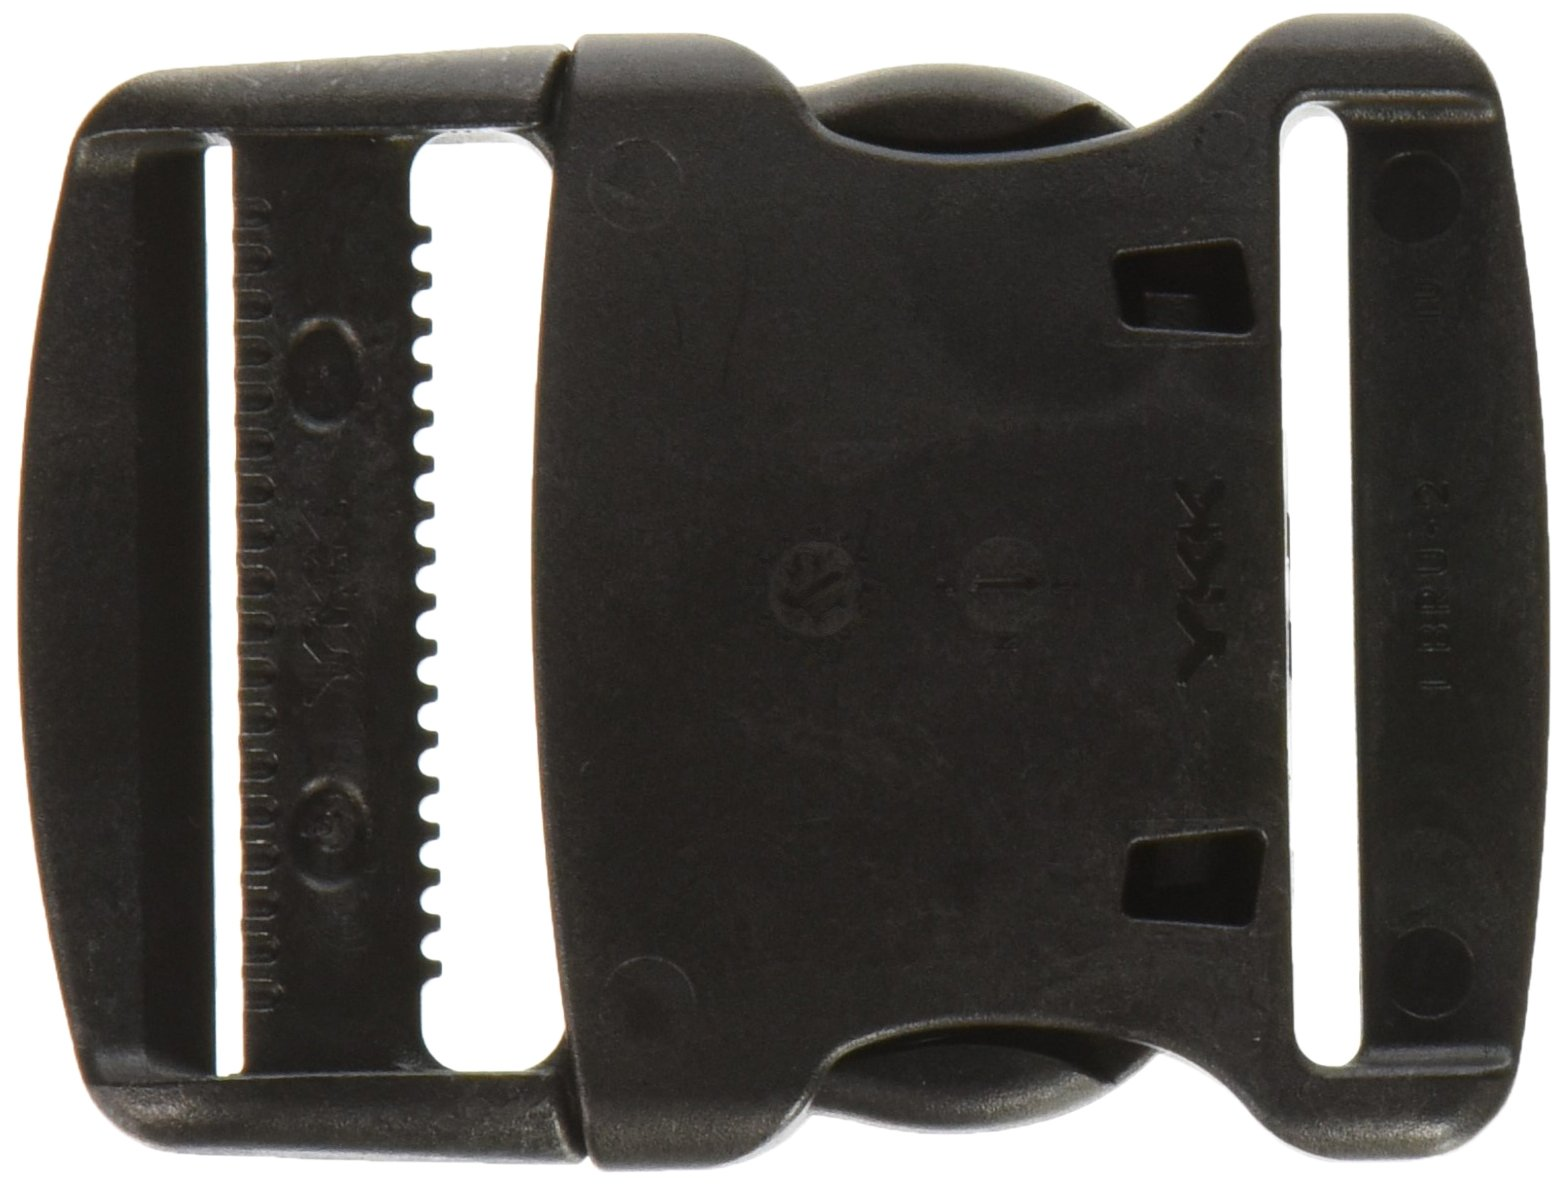 10 Inch Release Plastic Buckle